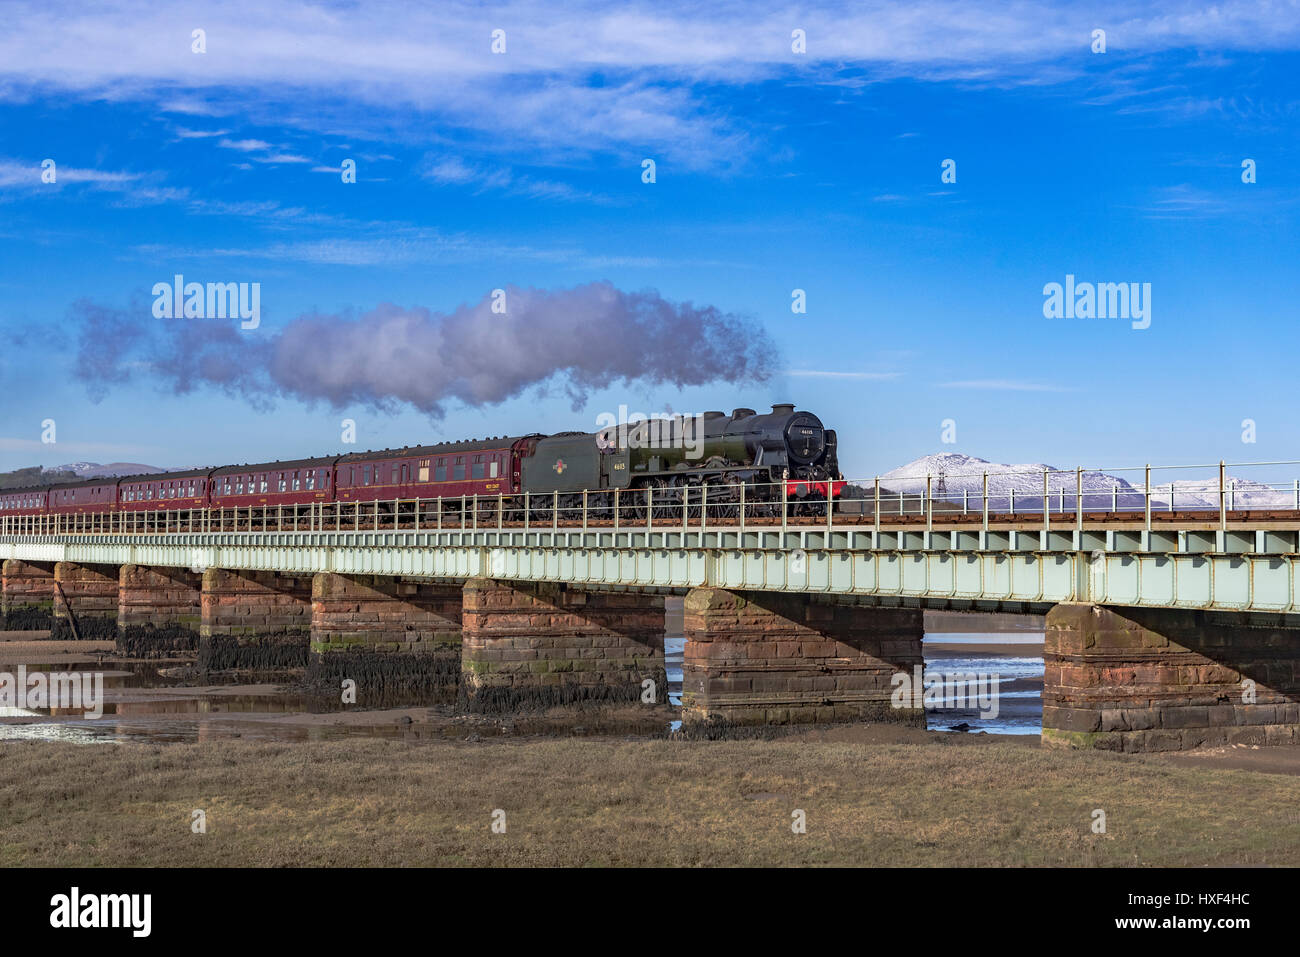 The Scots Guardsman steam train on the Eskmeals viaduct over the river Esk in Cumbria. - Stock Image